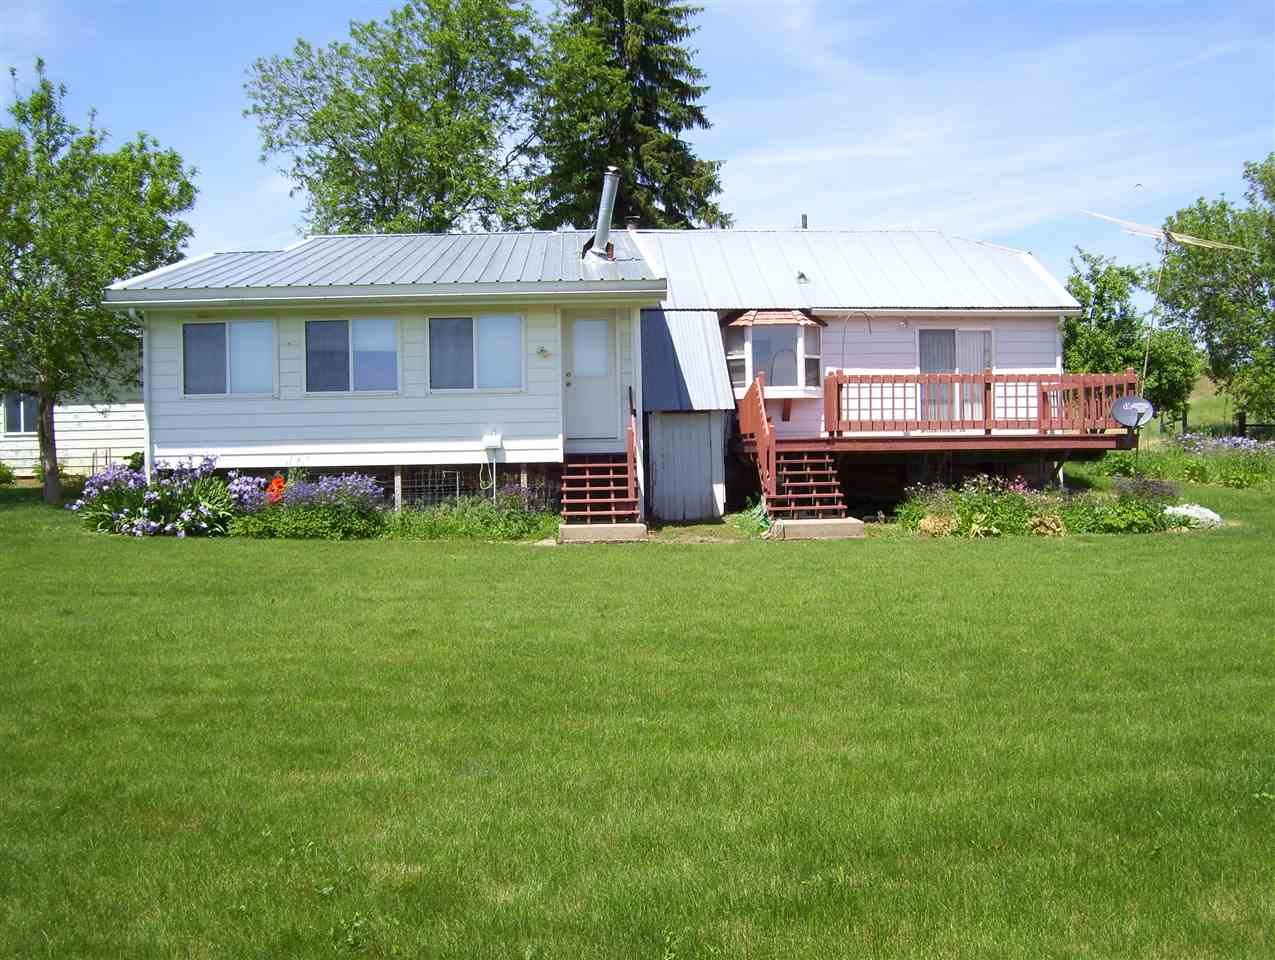 Single Family Home for Sale at 1096 Highway 95 1096 Highway 95 Indian Valley, Idaho 83632